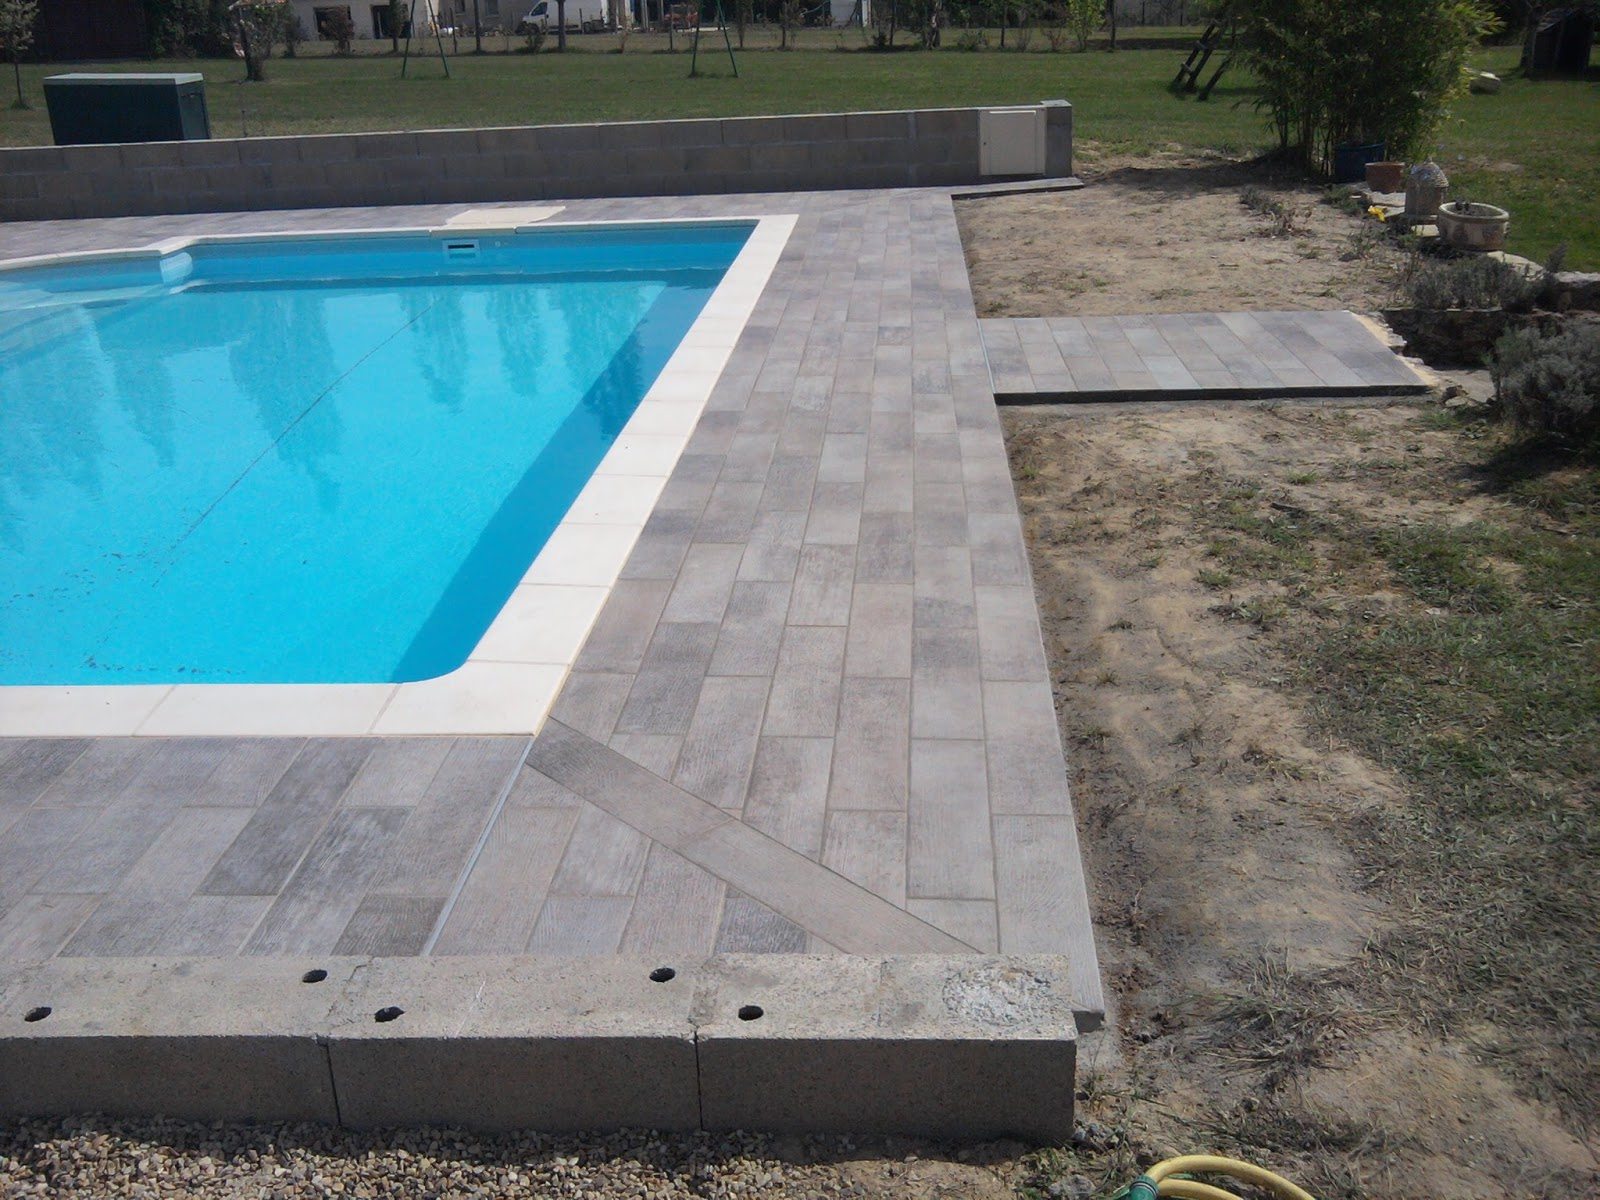 Carrelage tour de piscine 28 images carrelage for Carrelage piscine